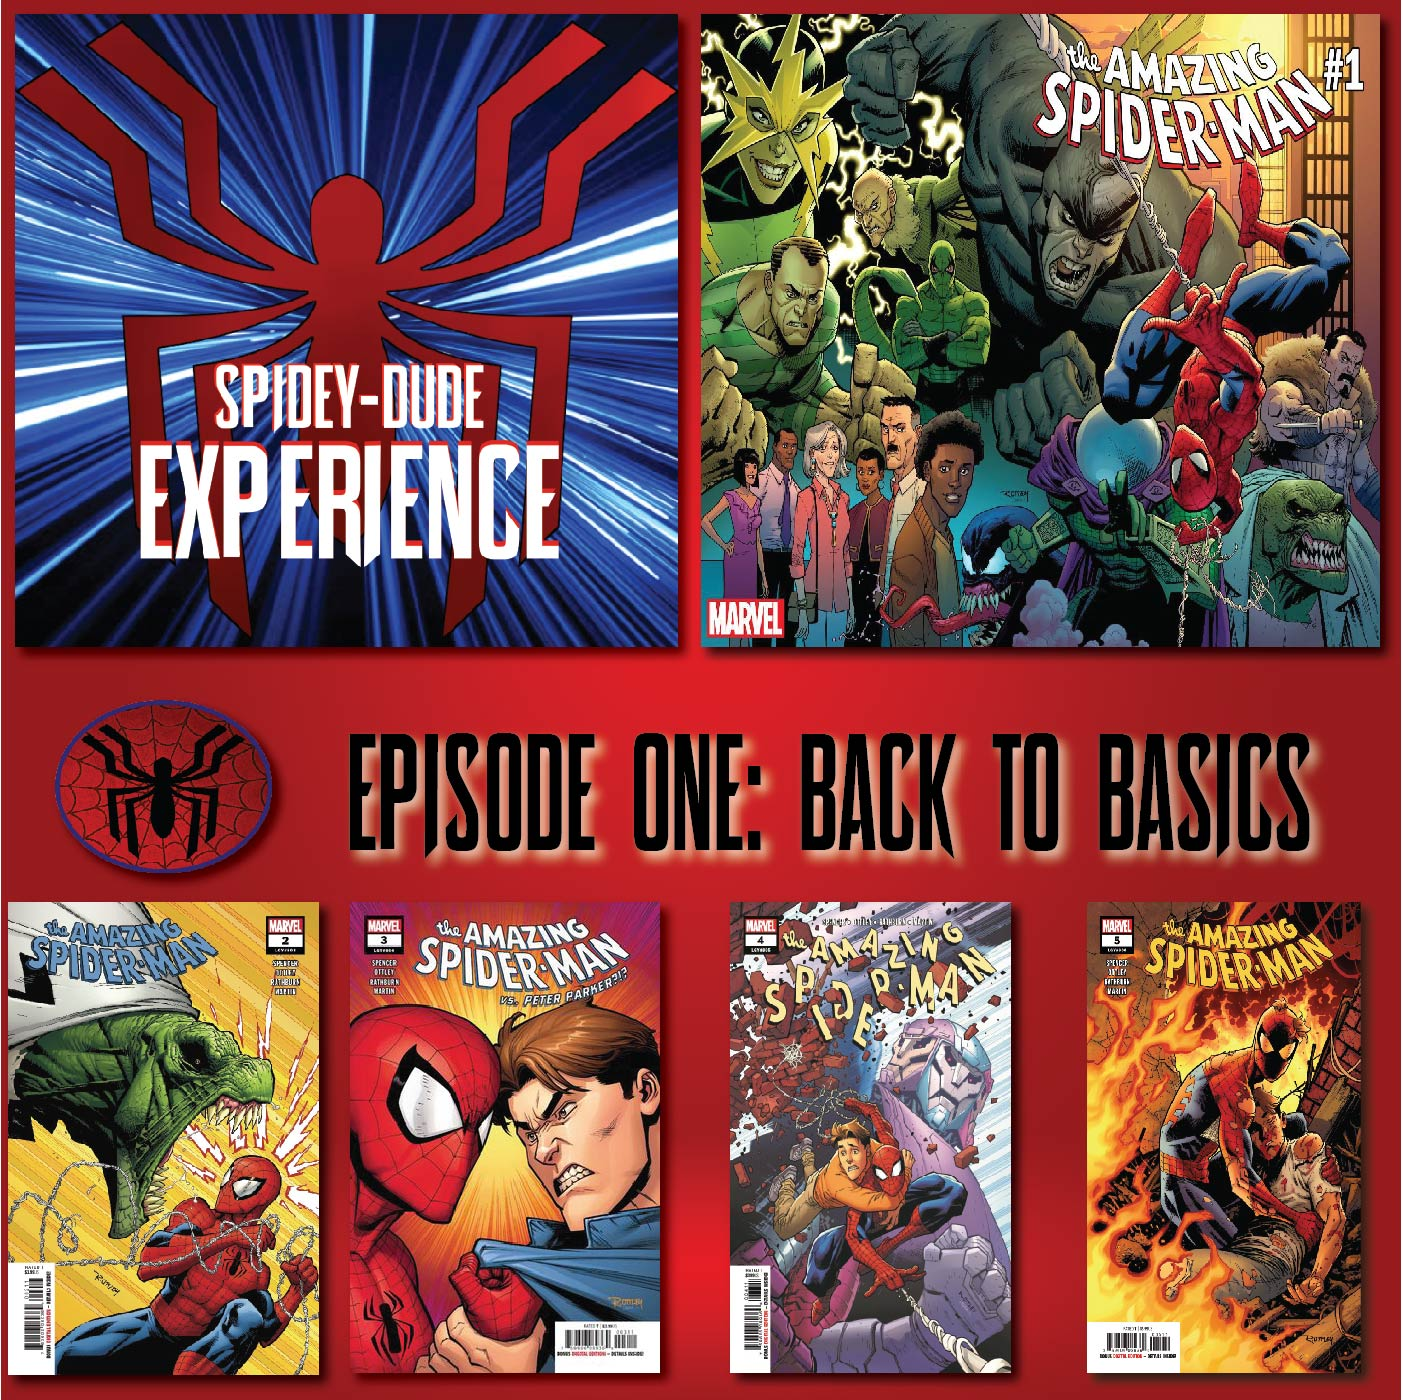 The SPIDEYDUDE EXPERIENCE EPISODE ONE: Back to Basics [Amazing Spider-Man 802-806 & FCBD 2018]